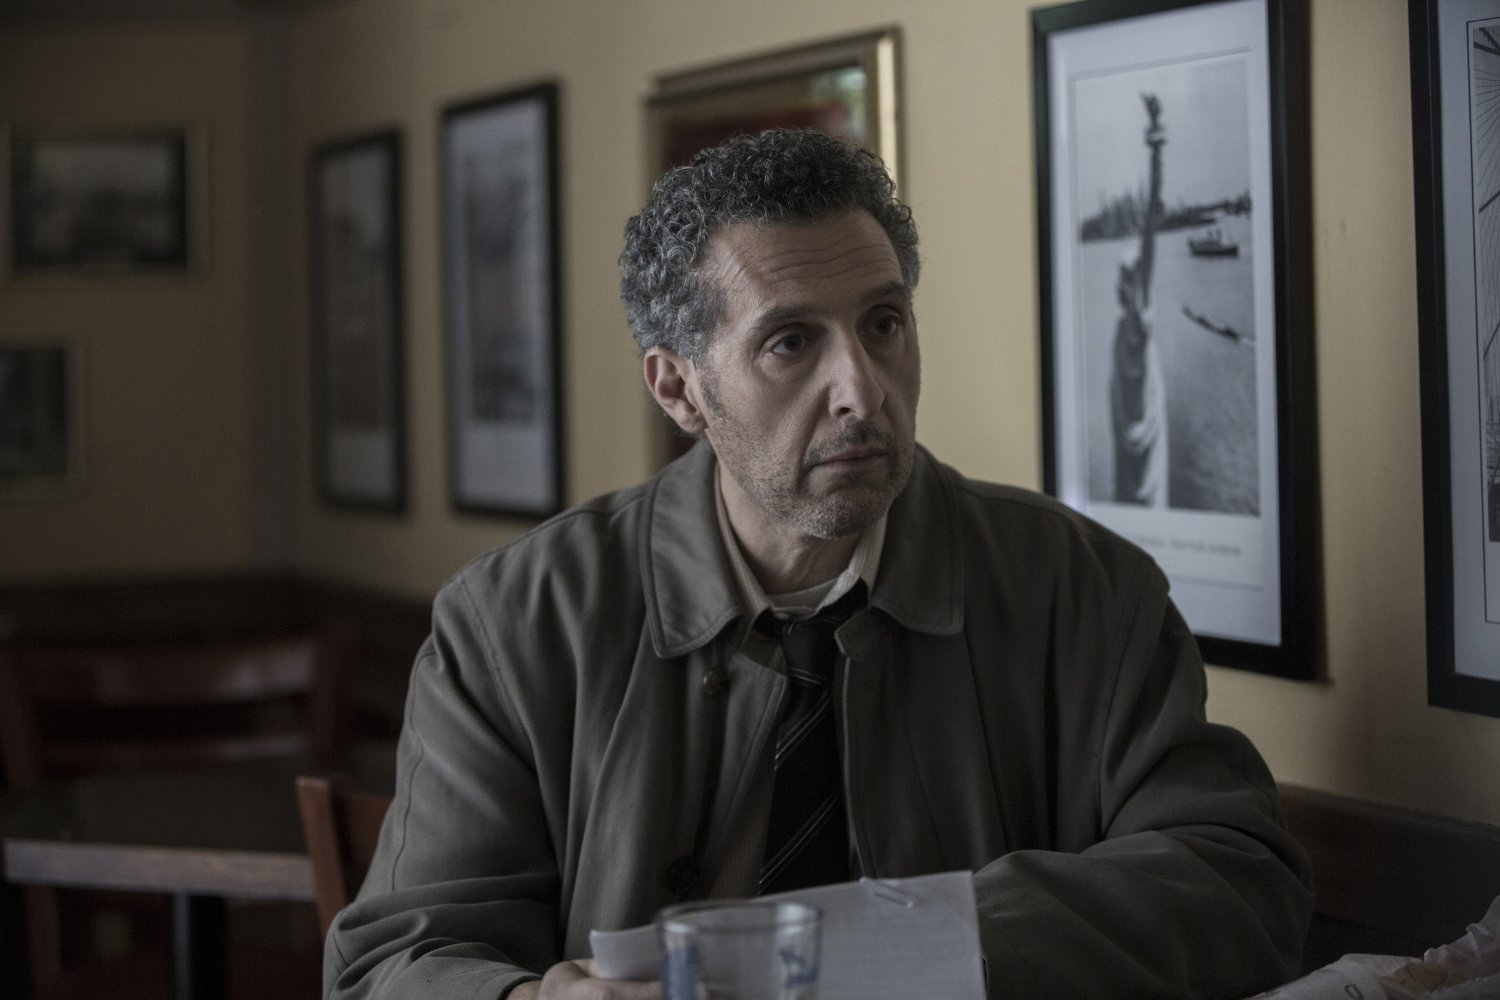 El desaliñado abogado de The Night Of, John Stone